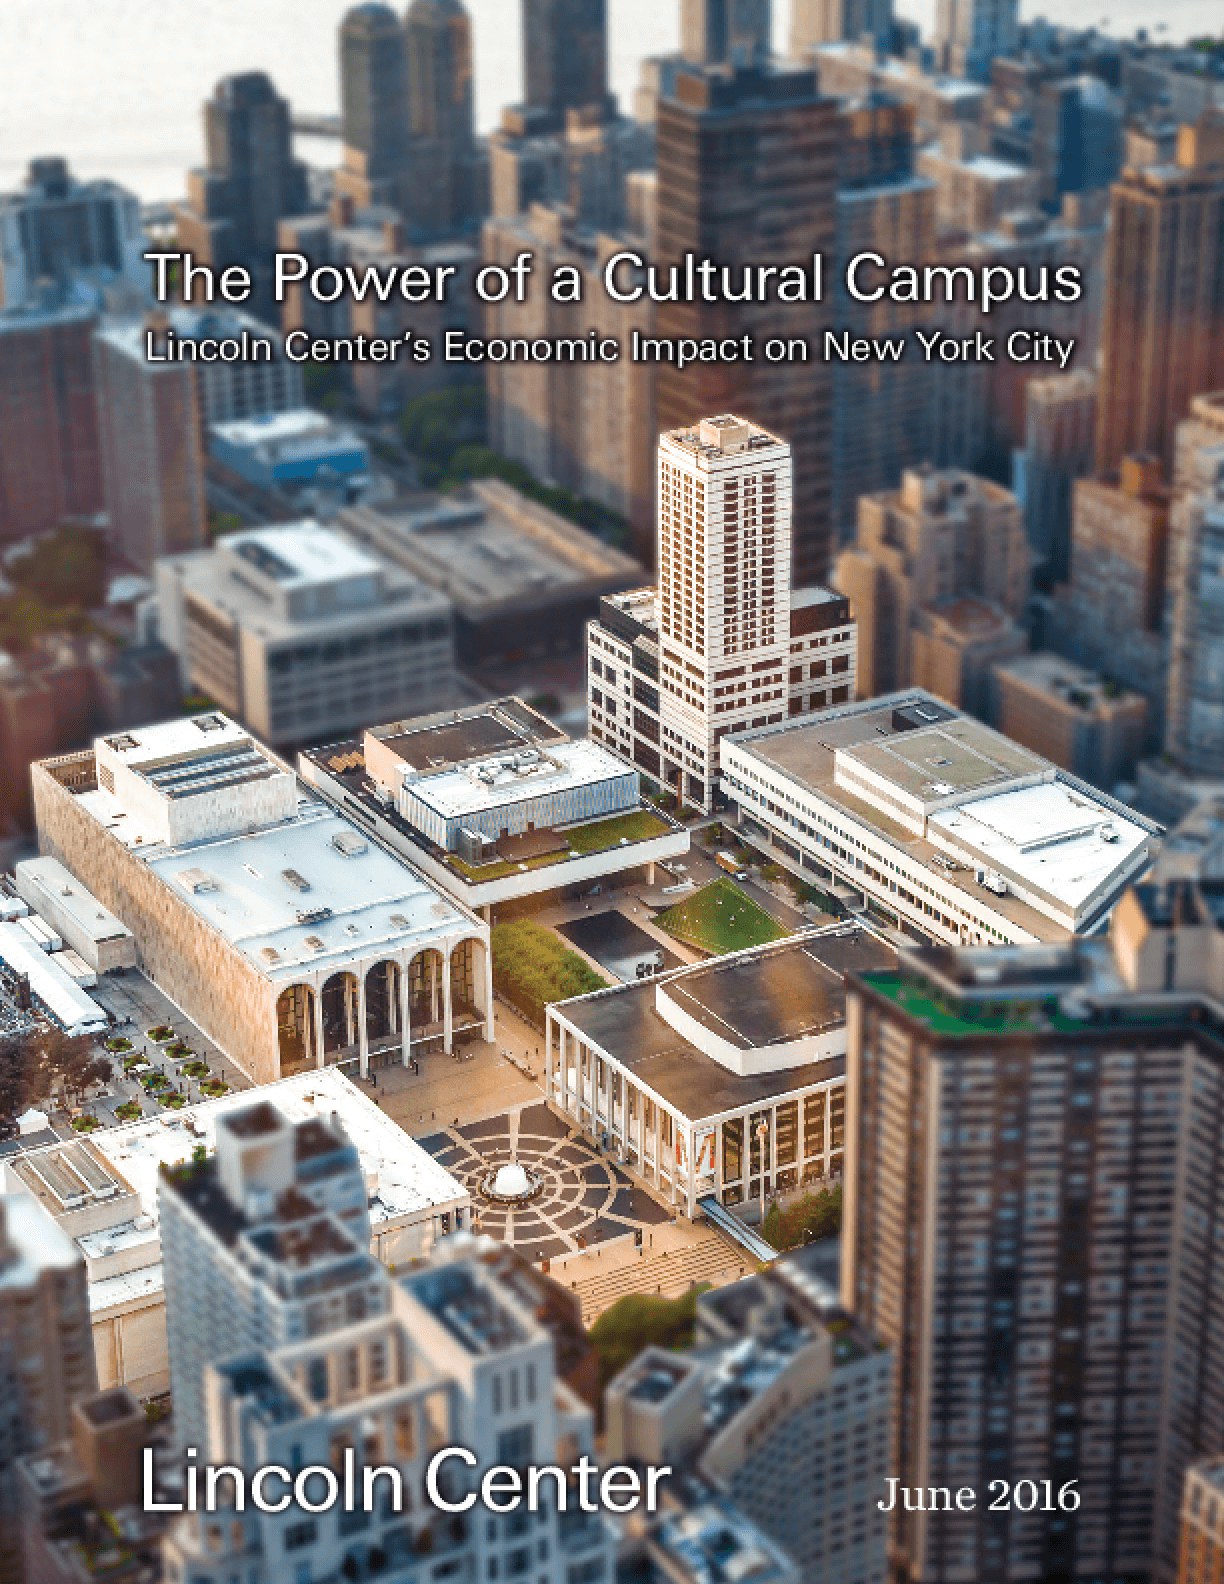 The Power of a Cultural Campus: Lincoln Center's Economic Impact on